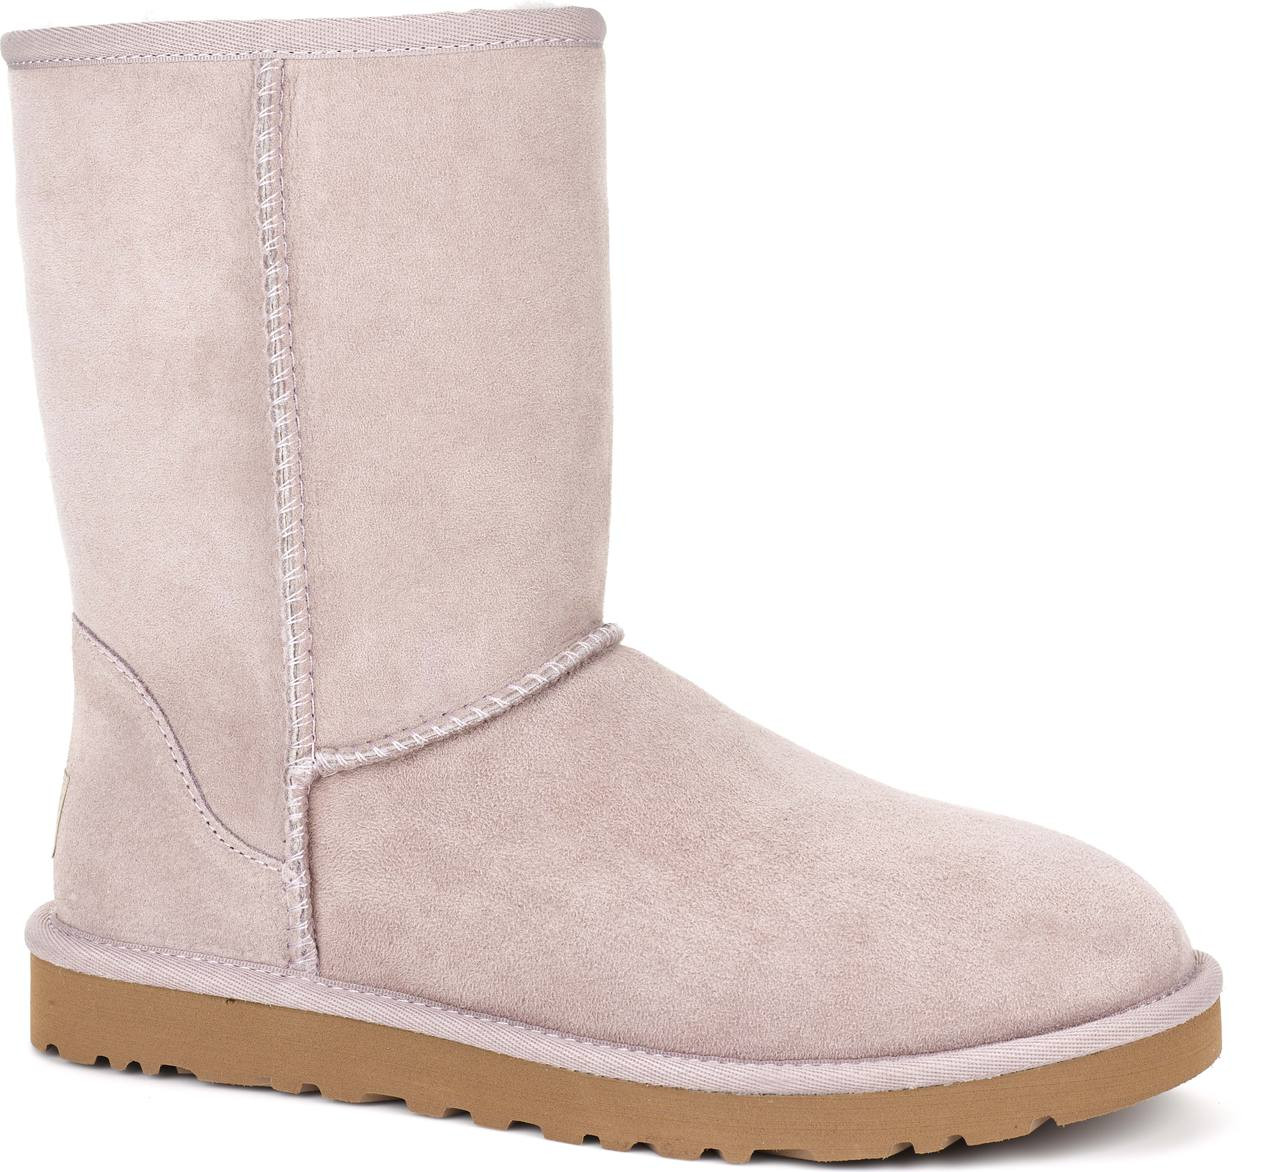 bea8f6a30cf top quality ugg classic short in feather up fd688 03c2e